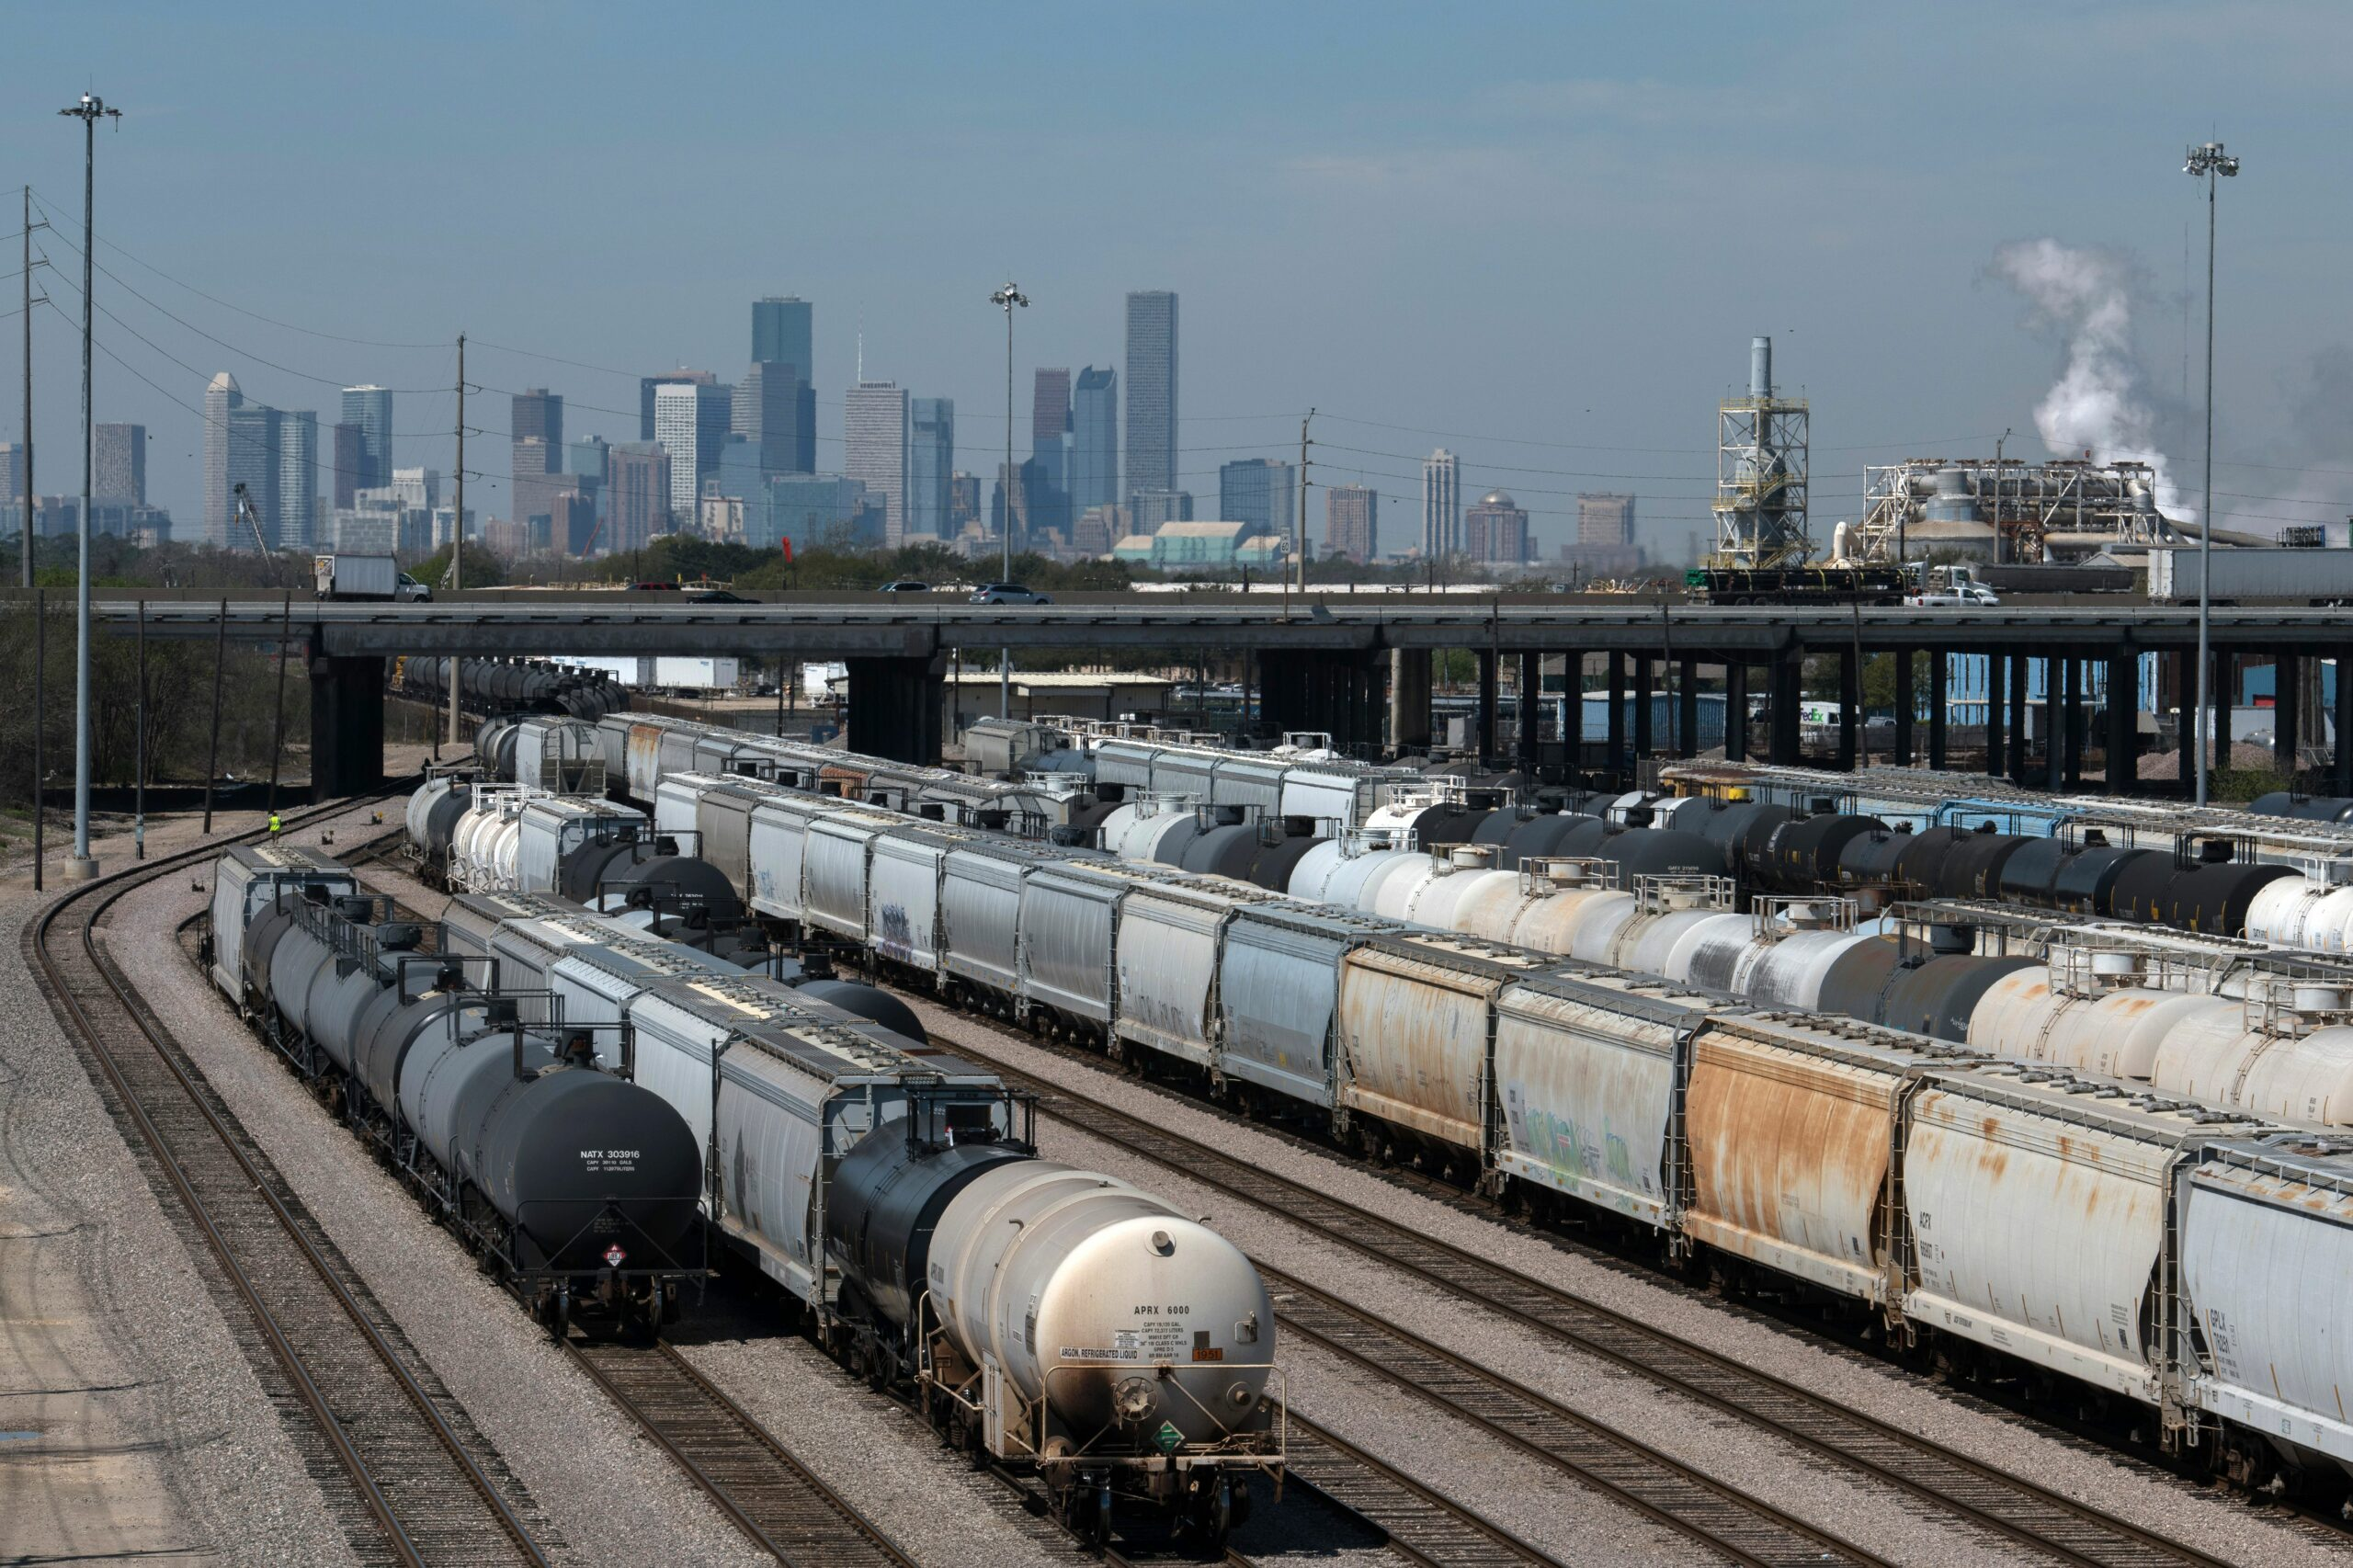 Houston's skyline, as seen from a railroad yard on the city's perimeter. Credit: Loren Elliott/ AFP via Getty Images.